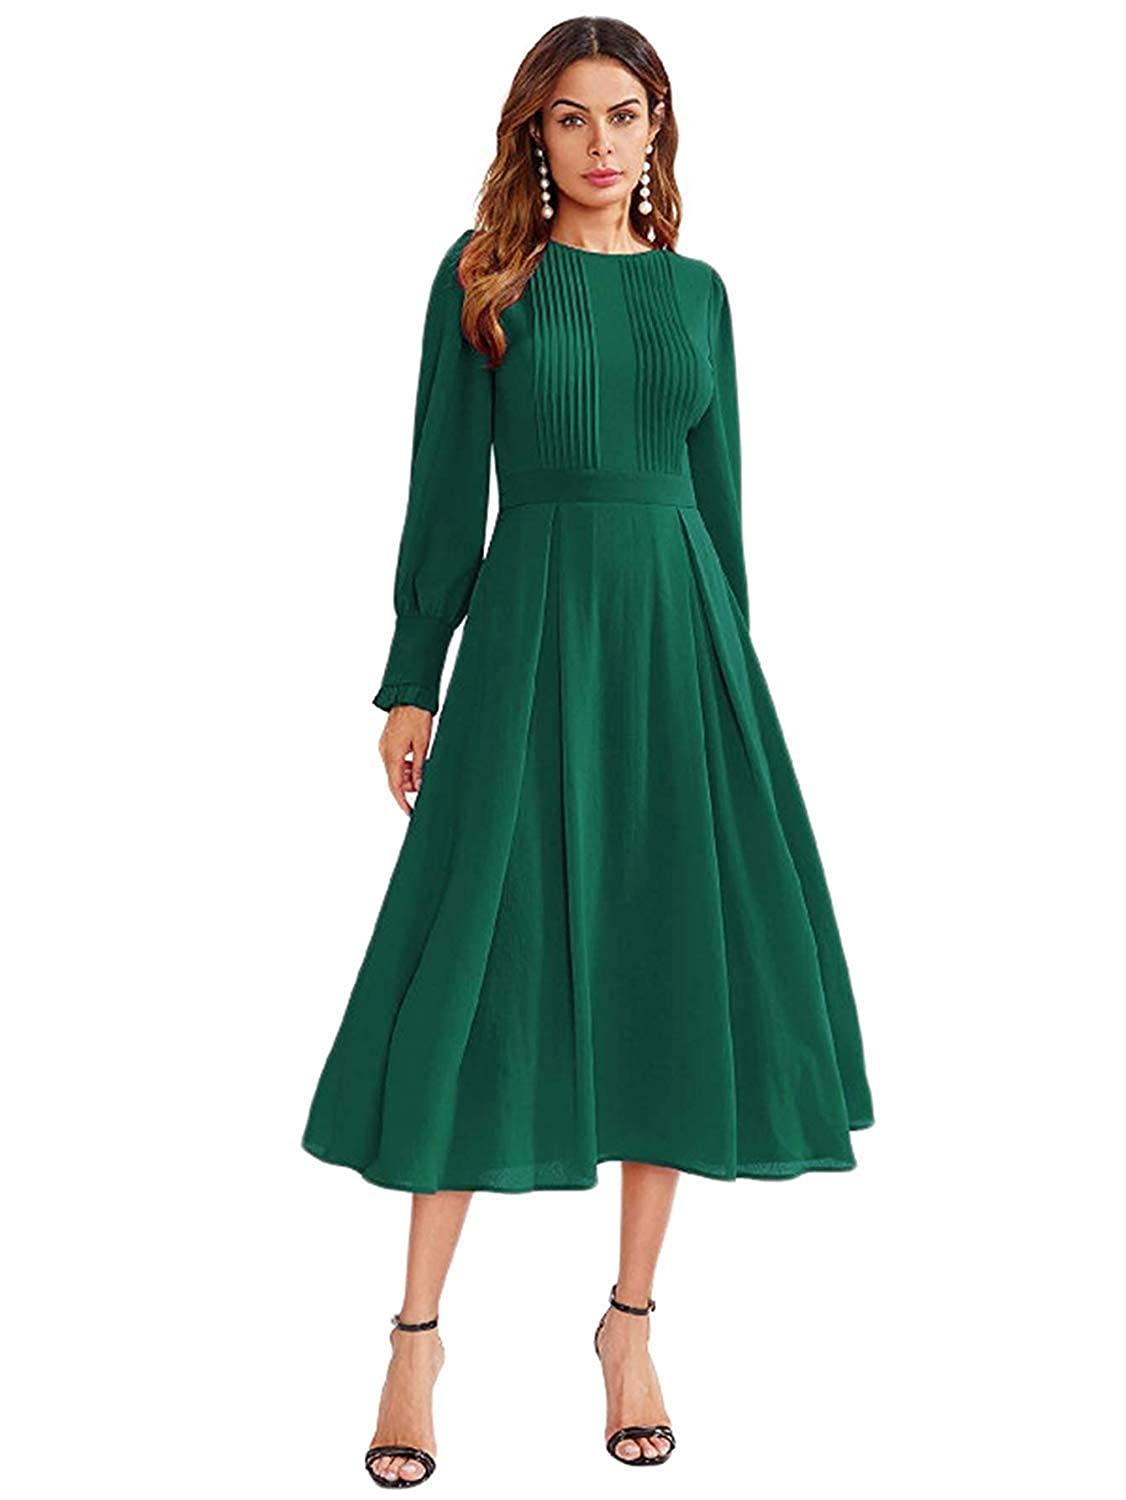 f52f37ff48 Milumia Women s Elegant Frilled Long Sleeve Pleated Fit   Flare Dress at  Amazon Women s Clothing store